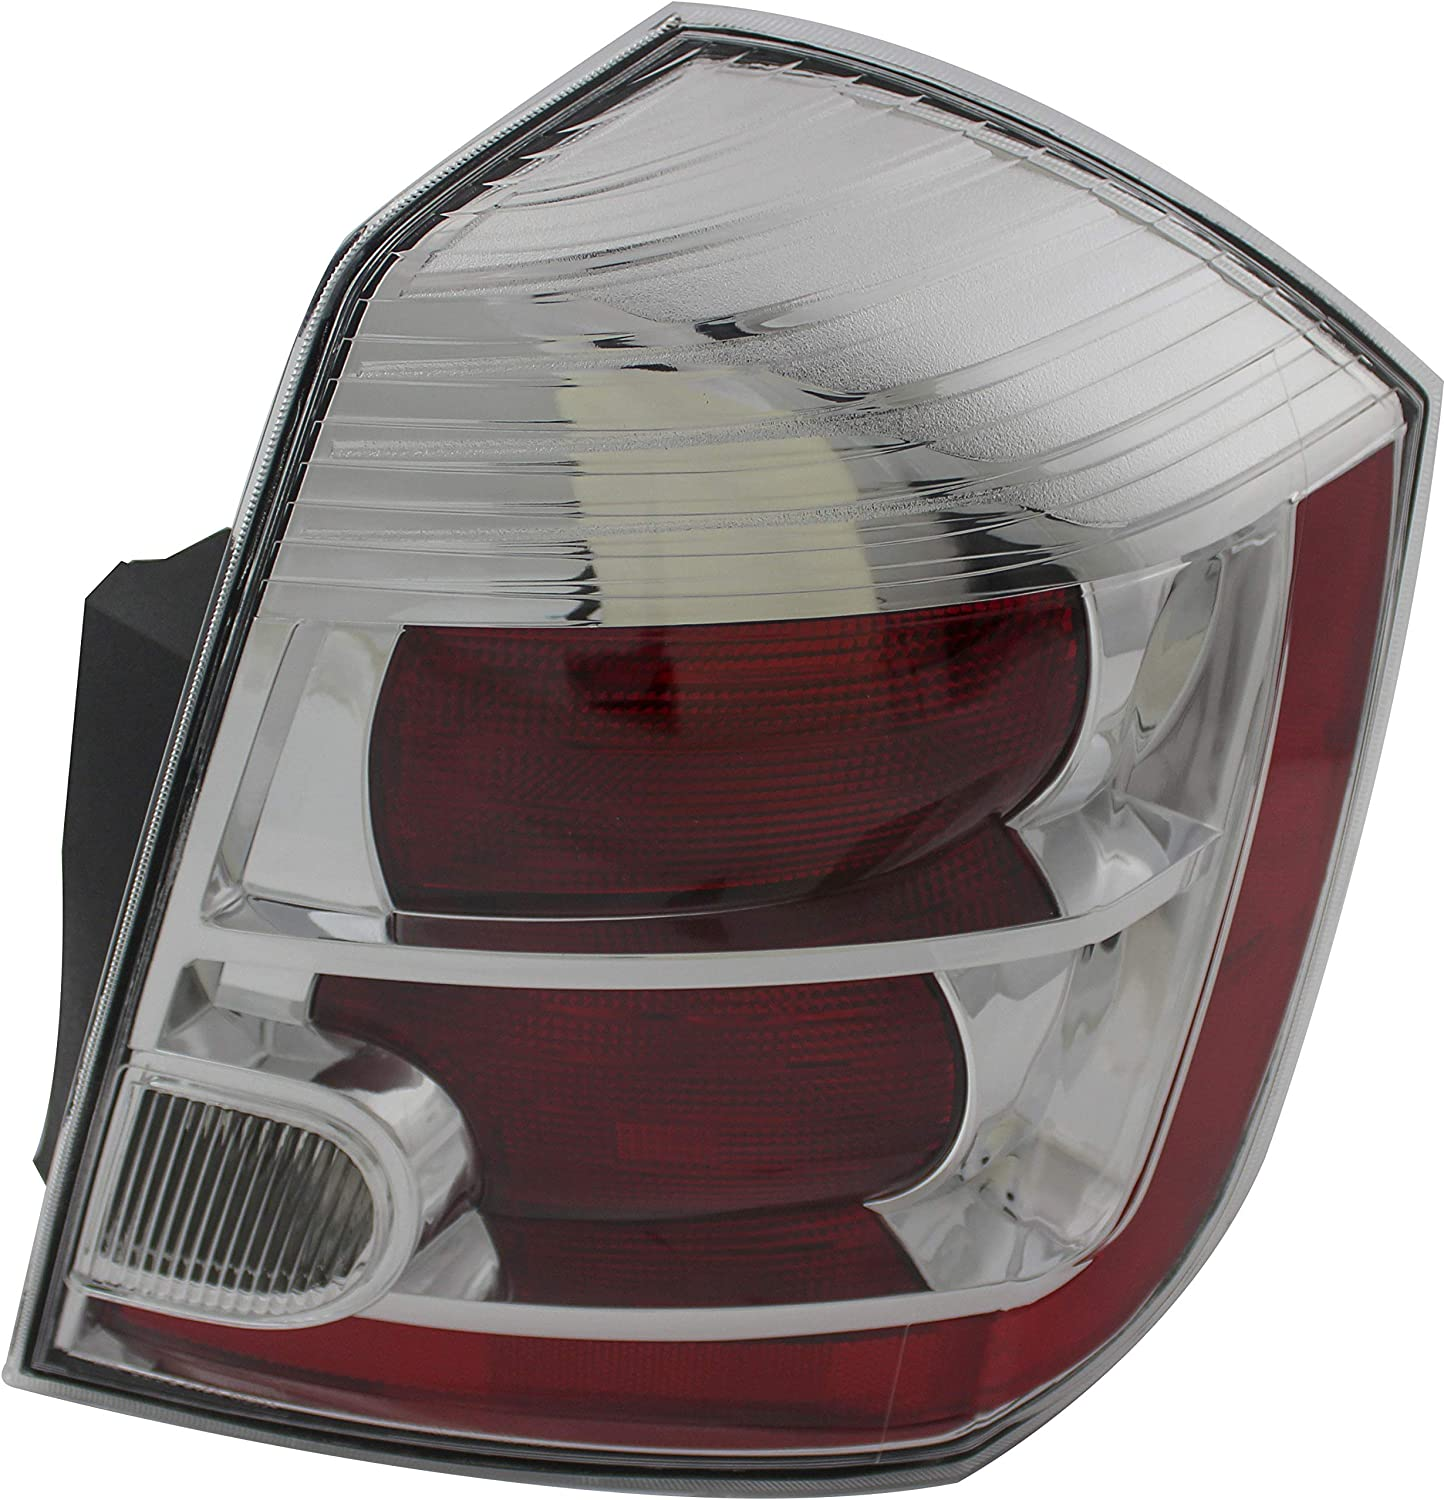 JP 安値 Auto Outer 市販 Tail Light Compatible Eng Sentra Nissan 2.0L With